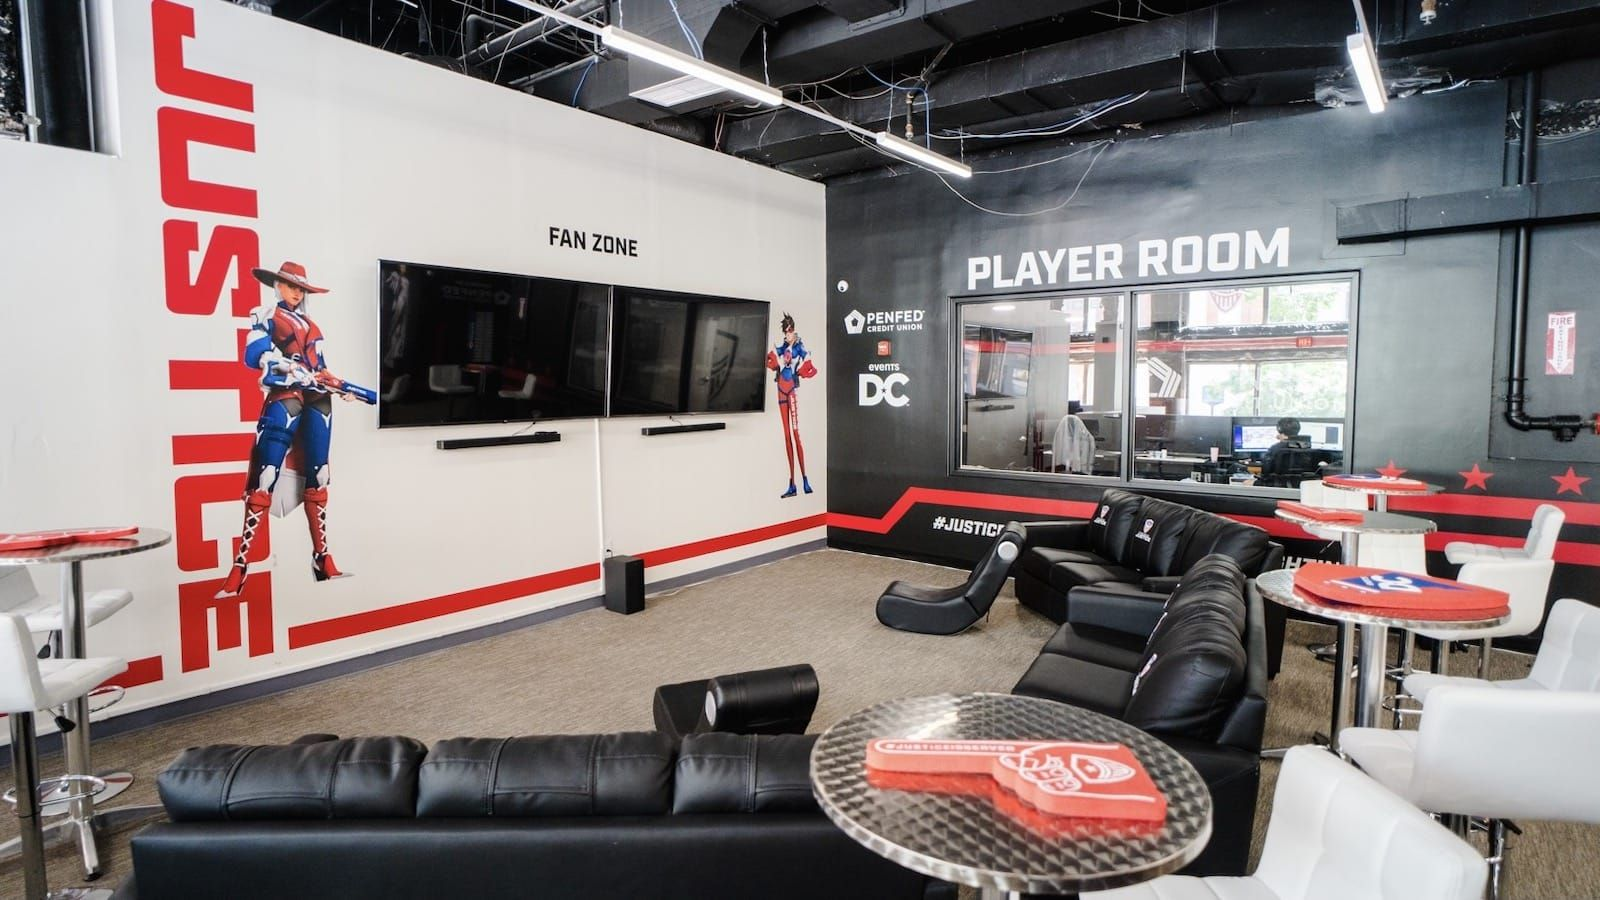 How the Washington Justice's new facility brings fans closer to the team